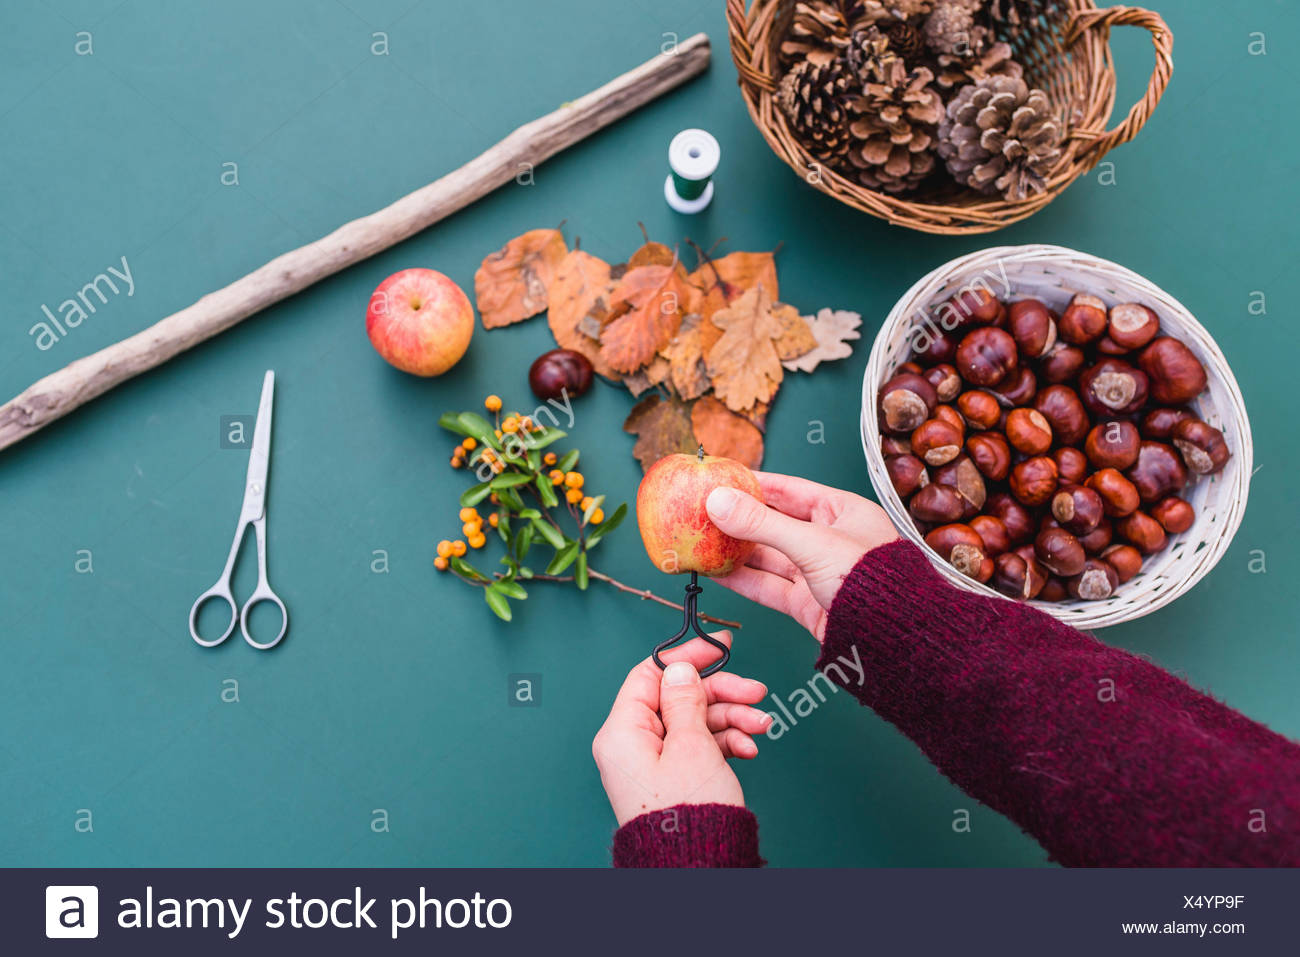 DIY, autumnal decoration, mobile, natural materials, crafting, women's hands, detail, Stock Photo